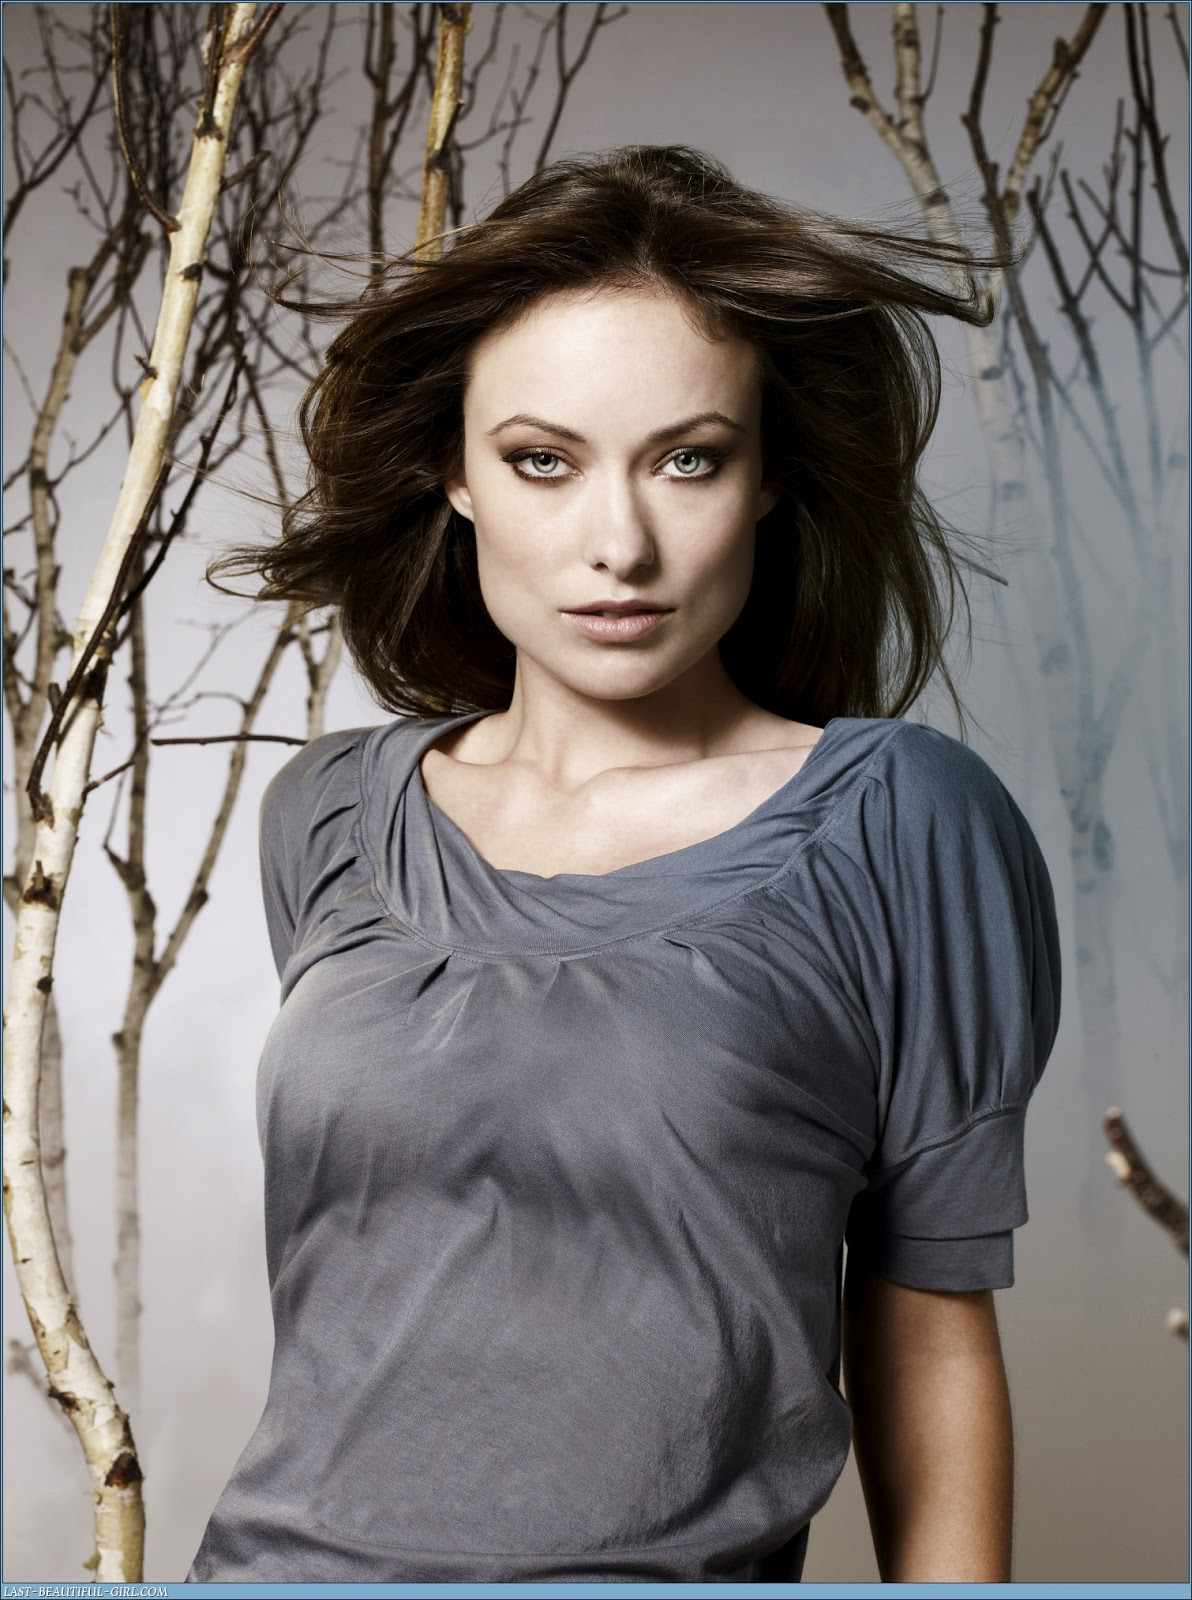 Olivia Wilde Profile And New Pictures 2013